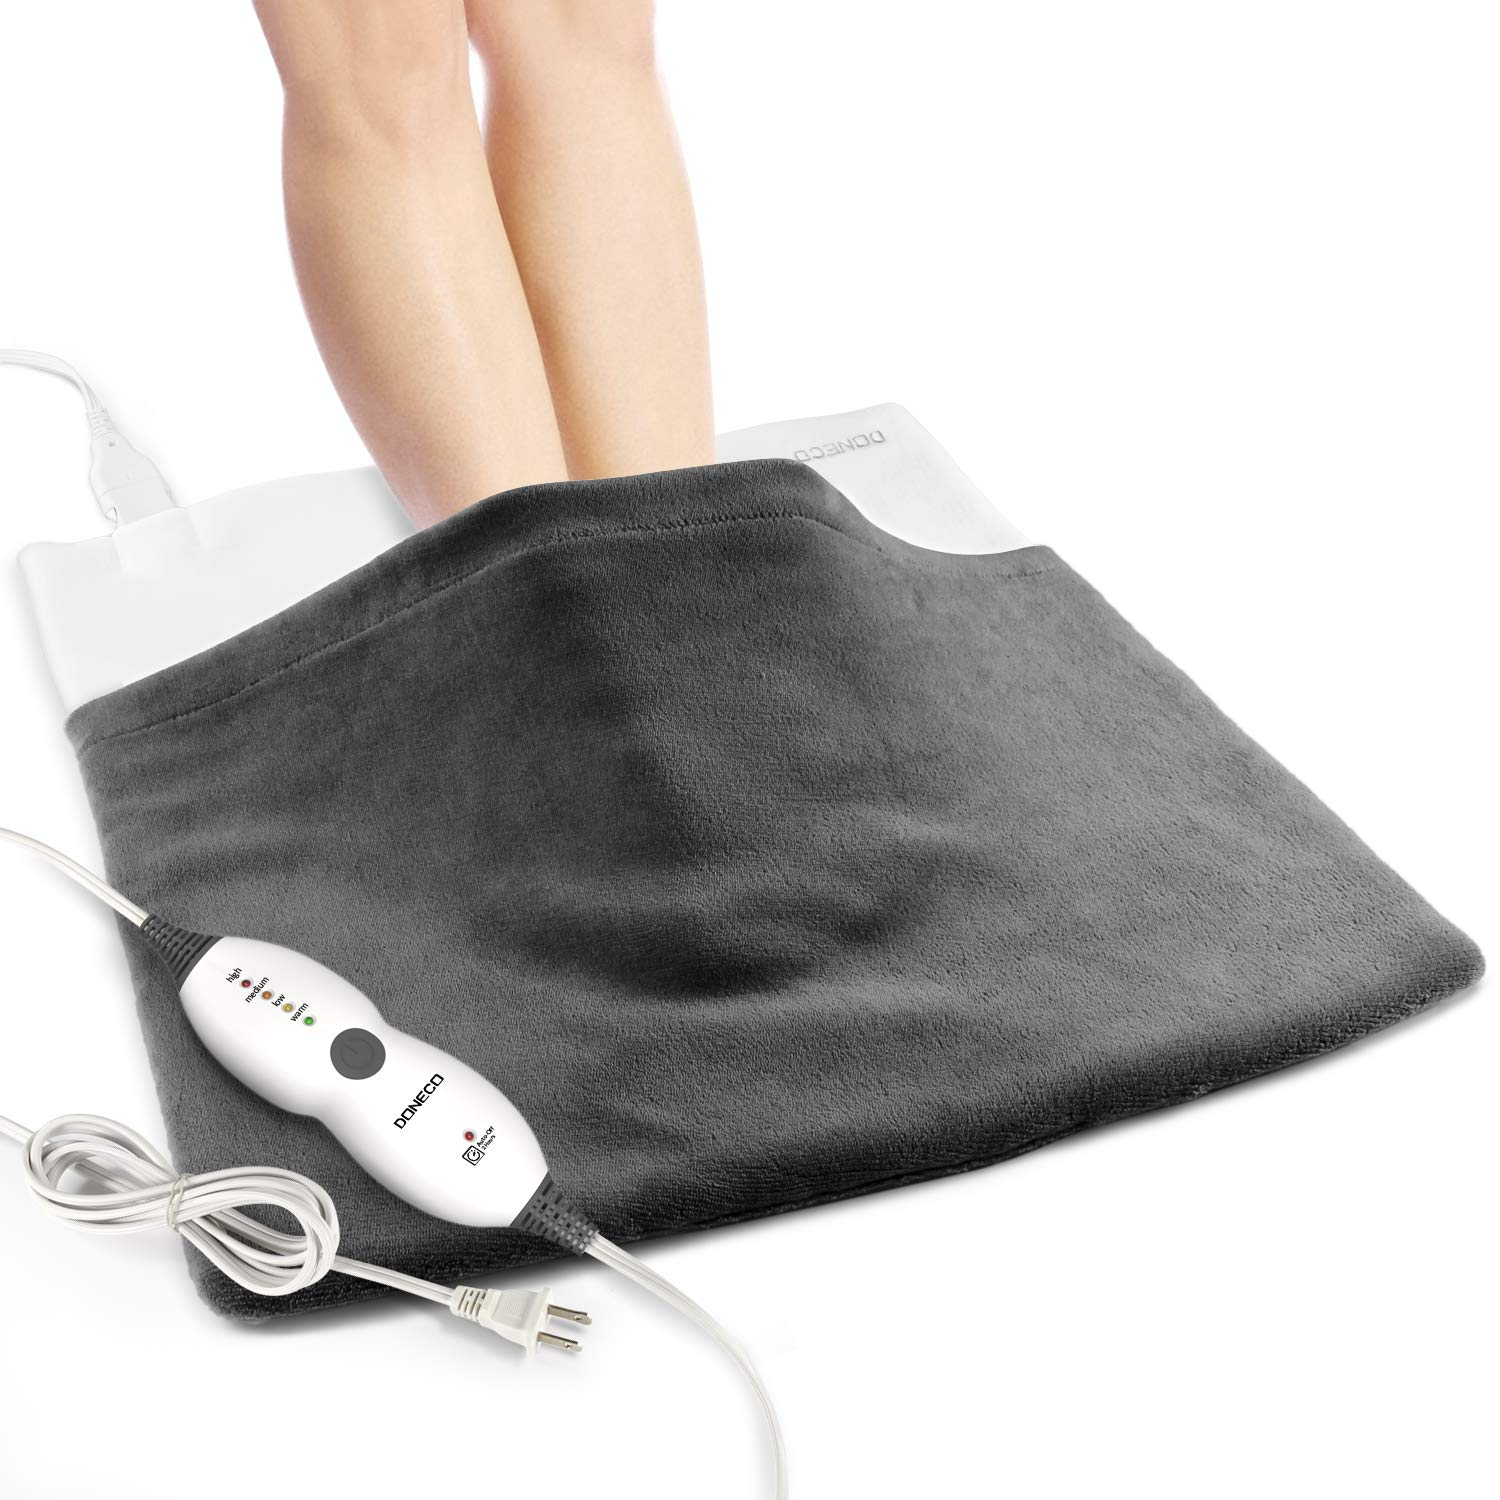 DONECO King Size Heating Pad, Electric Foot Warmer with 4 Temperature Settings and Fast-Heating Technology